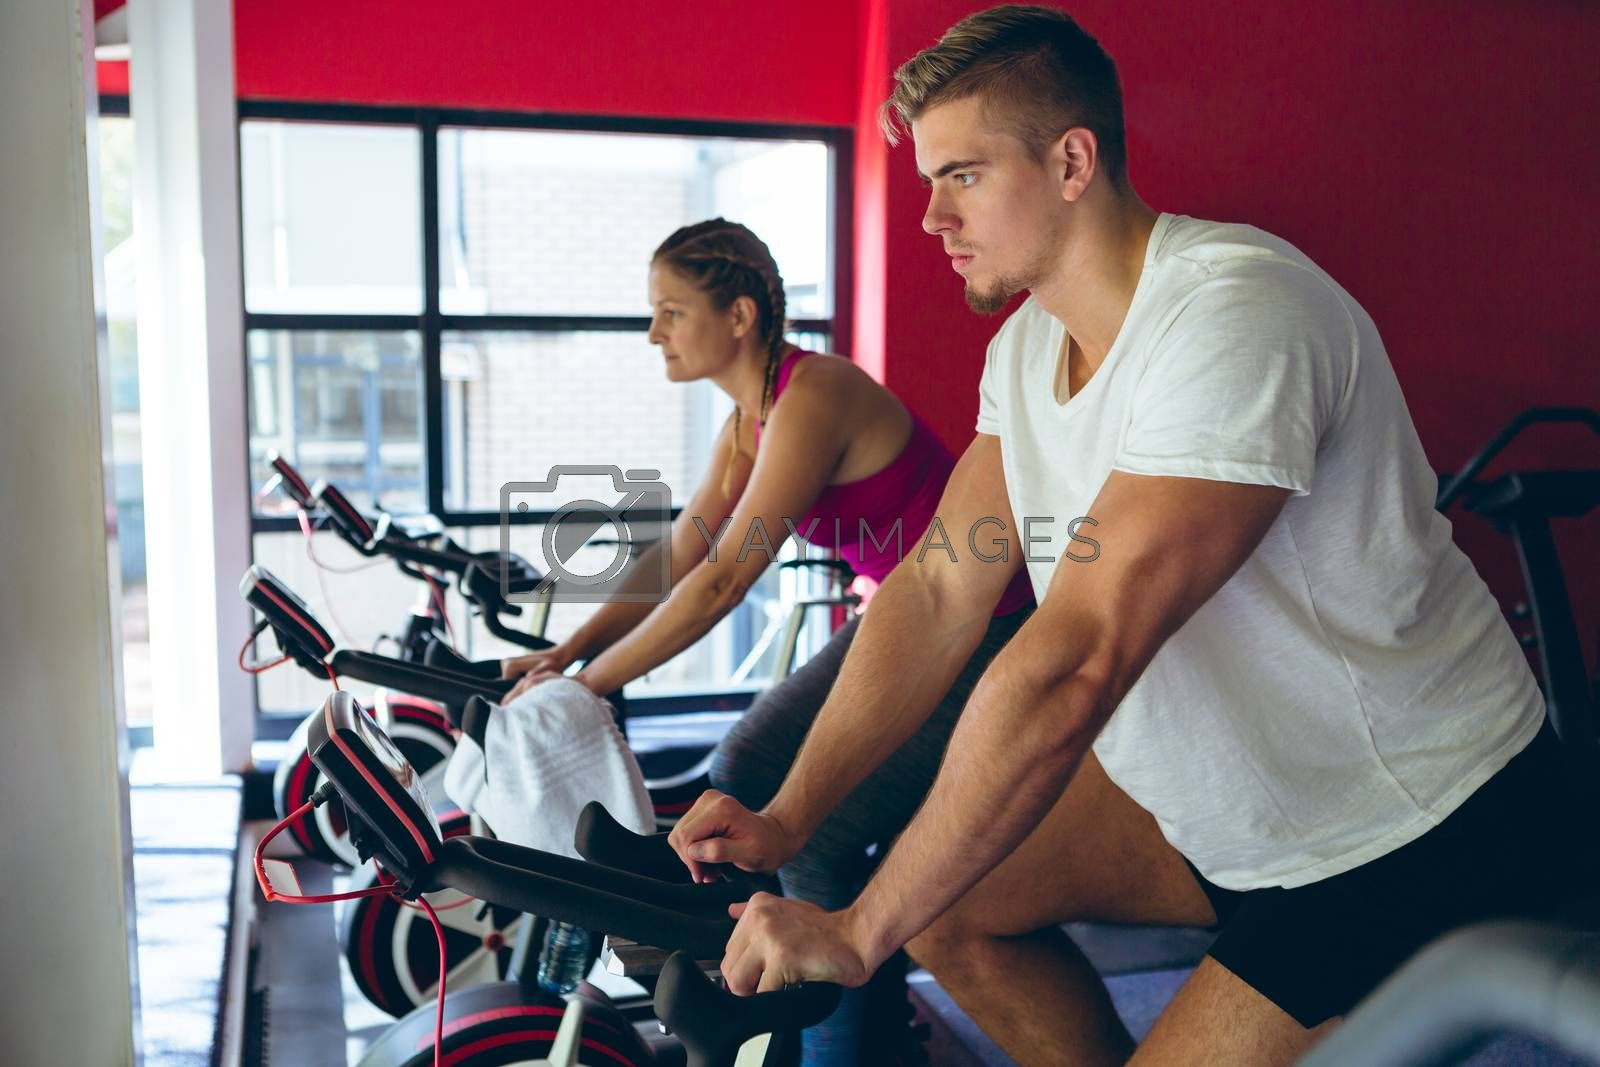 Side view of young Caucasian male and female athlete exercising with exercise bike in fitness center. Bright modern gym with fit healthy people working out and training